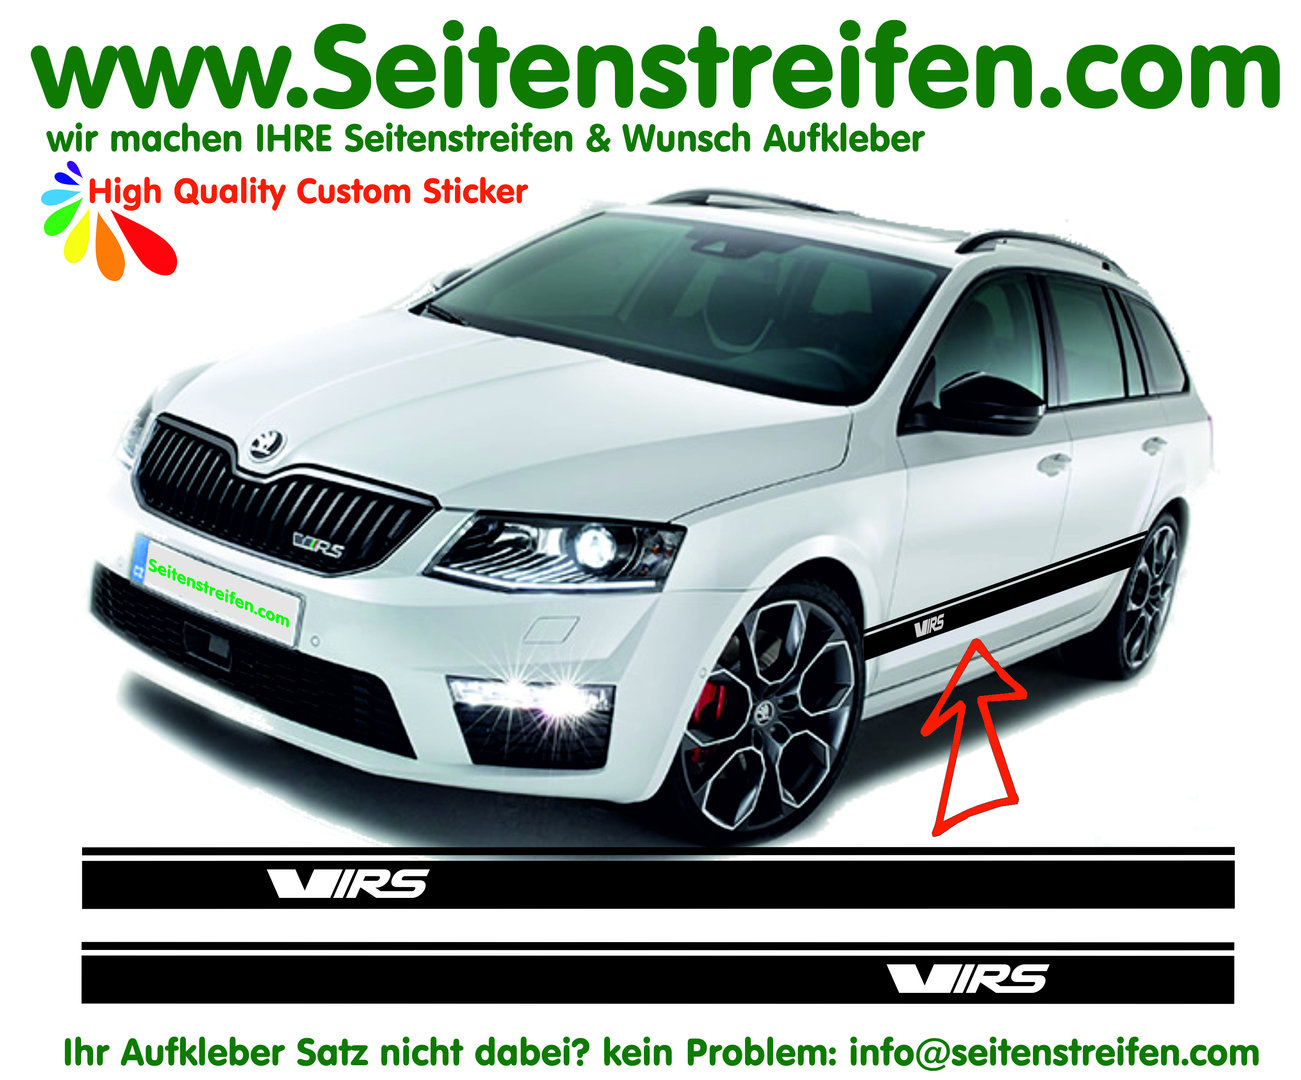 Skoda Rapid Spaceback VRS / RS Sticker Autocollant Trousse complète sticker Set - N° 6252